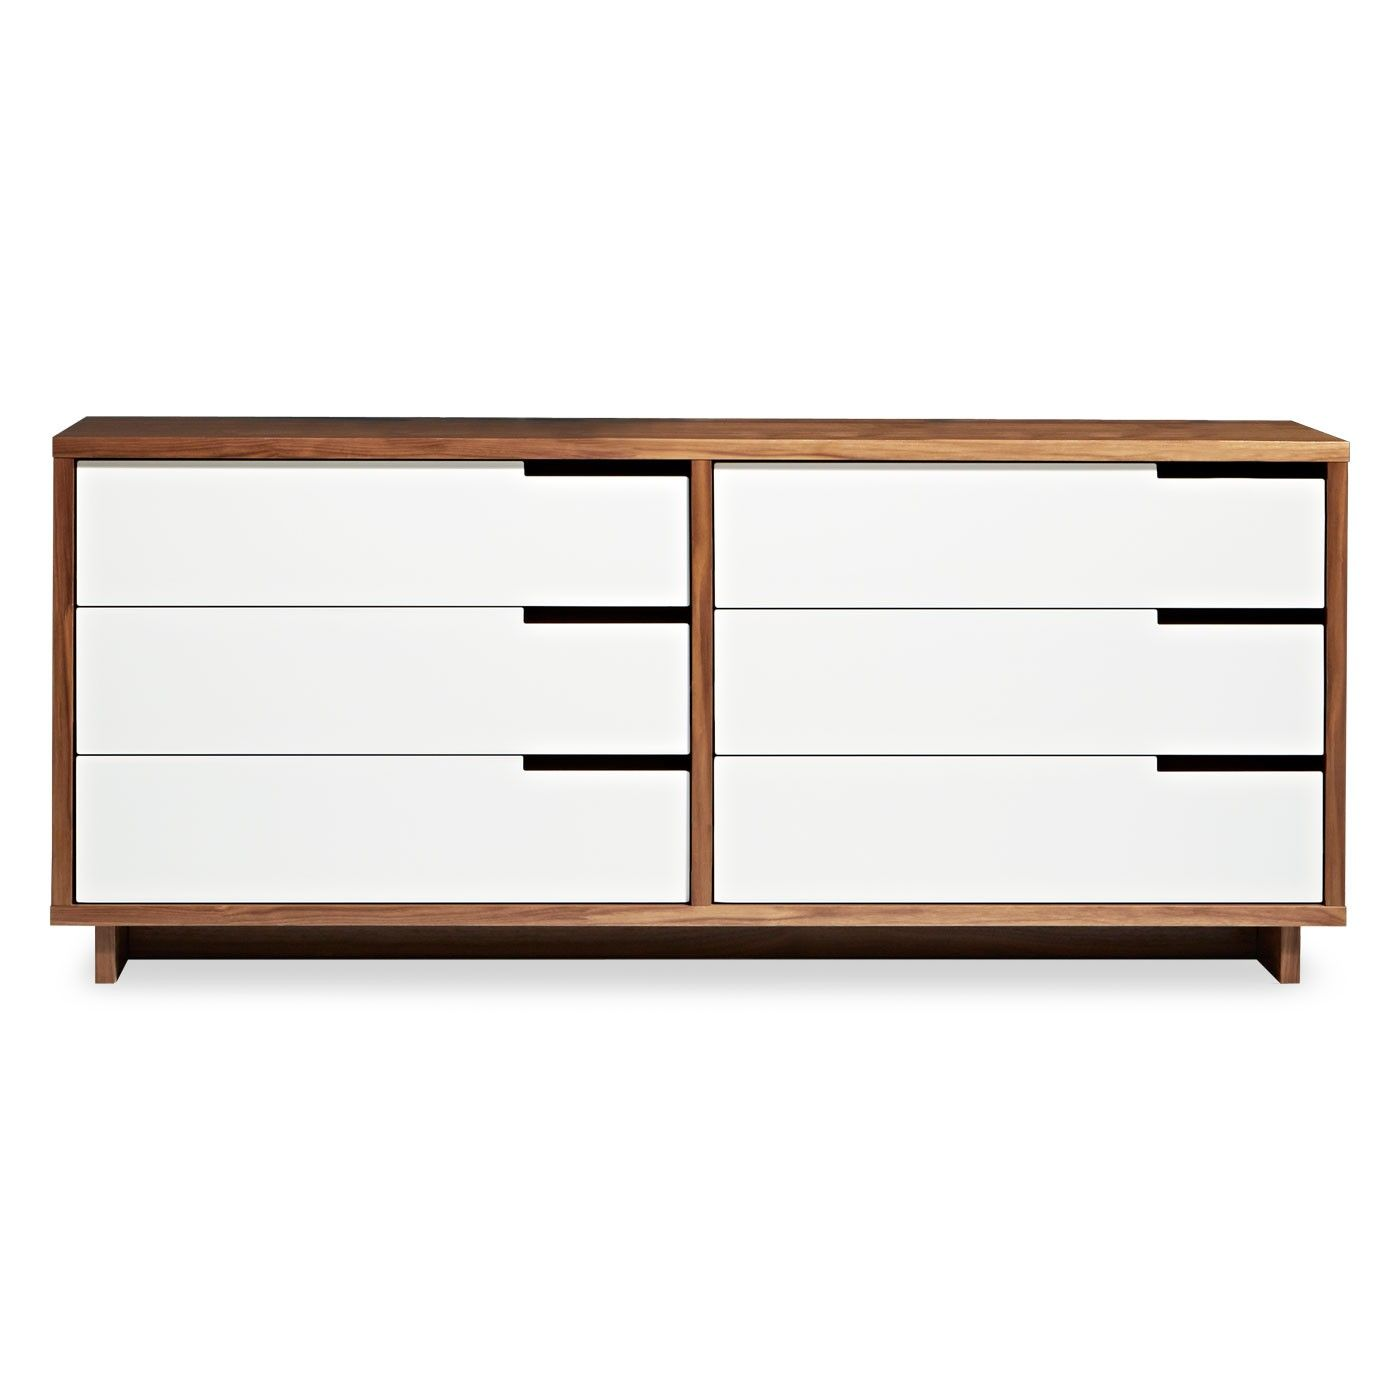 Modu Licious Low Dresser Storage Shelving